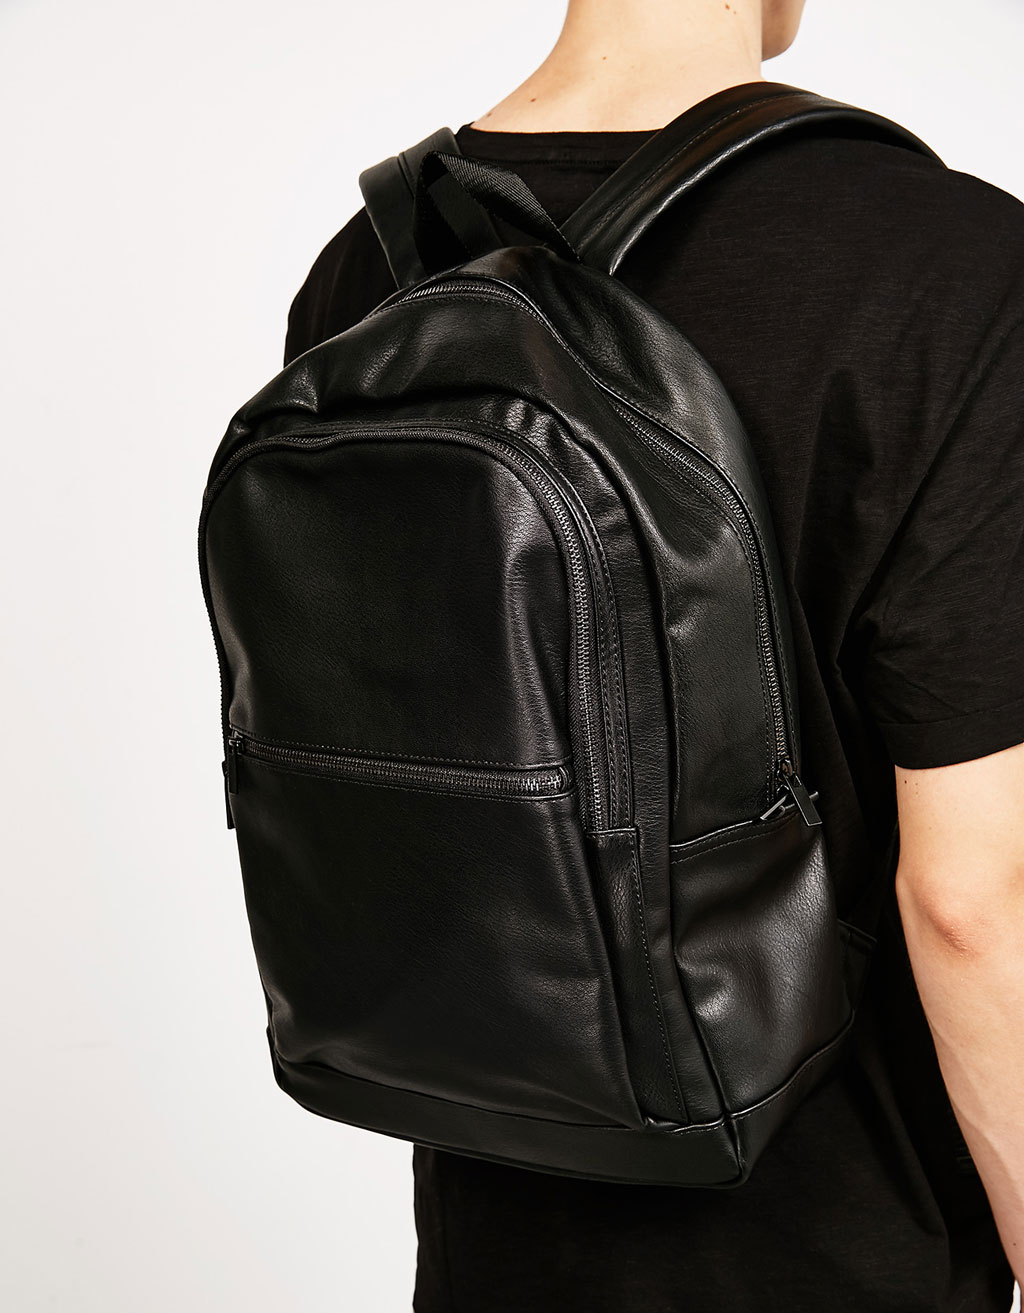 Double zipper backpack